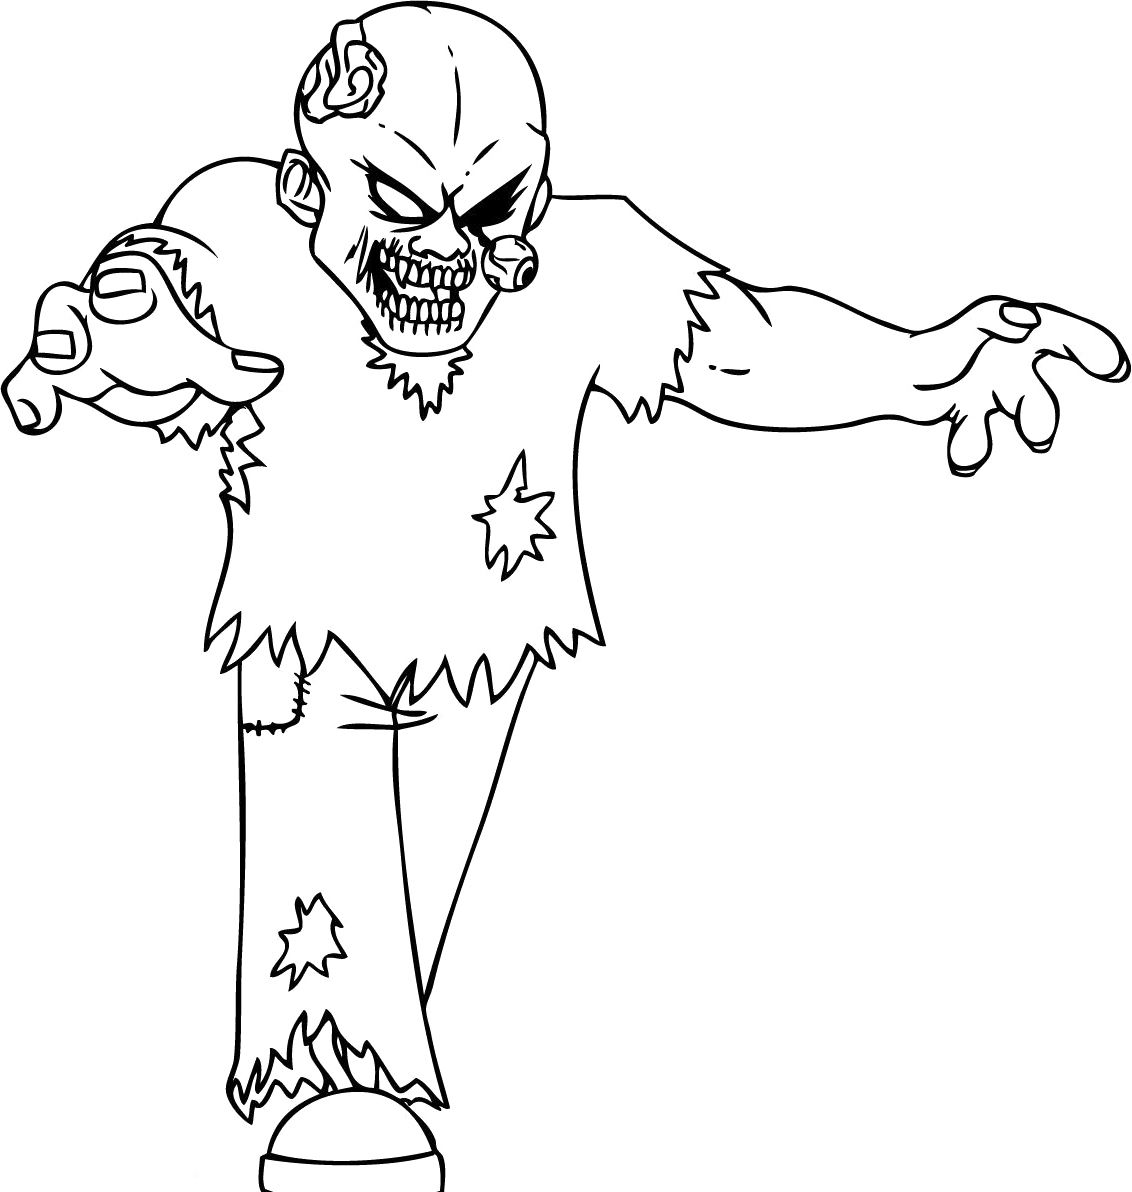 disney channel zombies coloring pages disney channel zombies coloring pages addison and zed disney zombies pages coloring channel